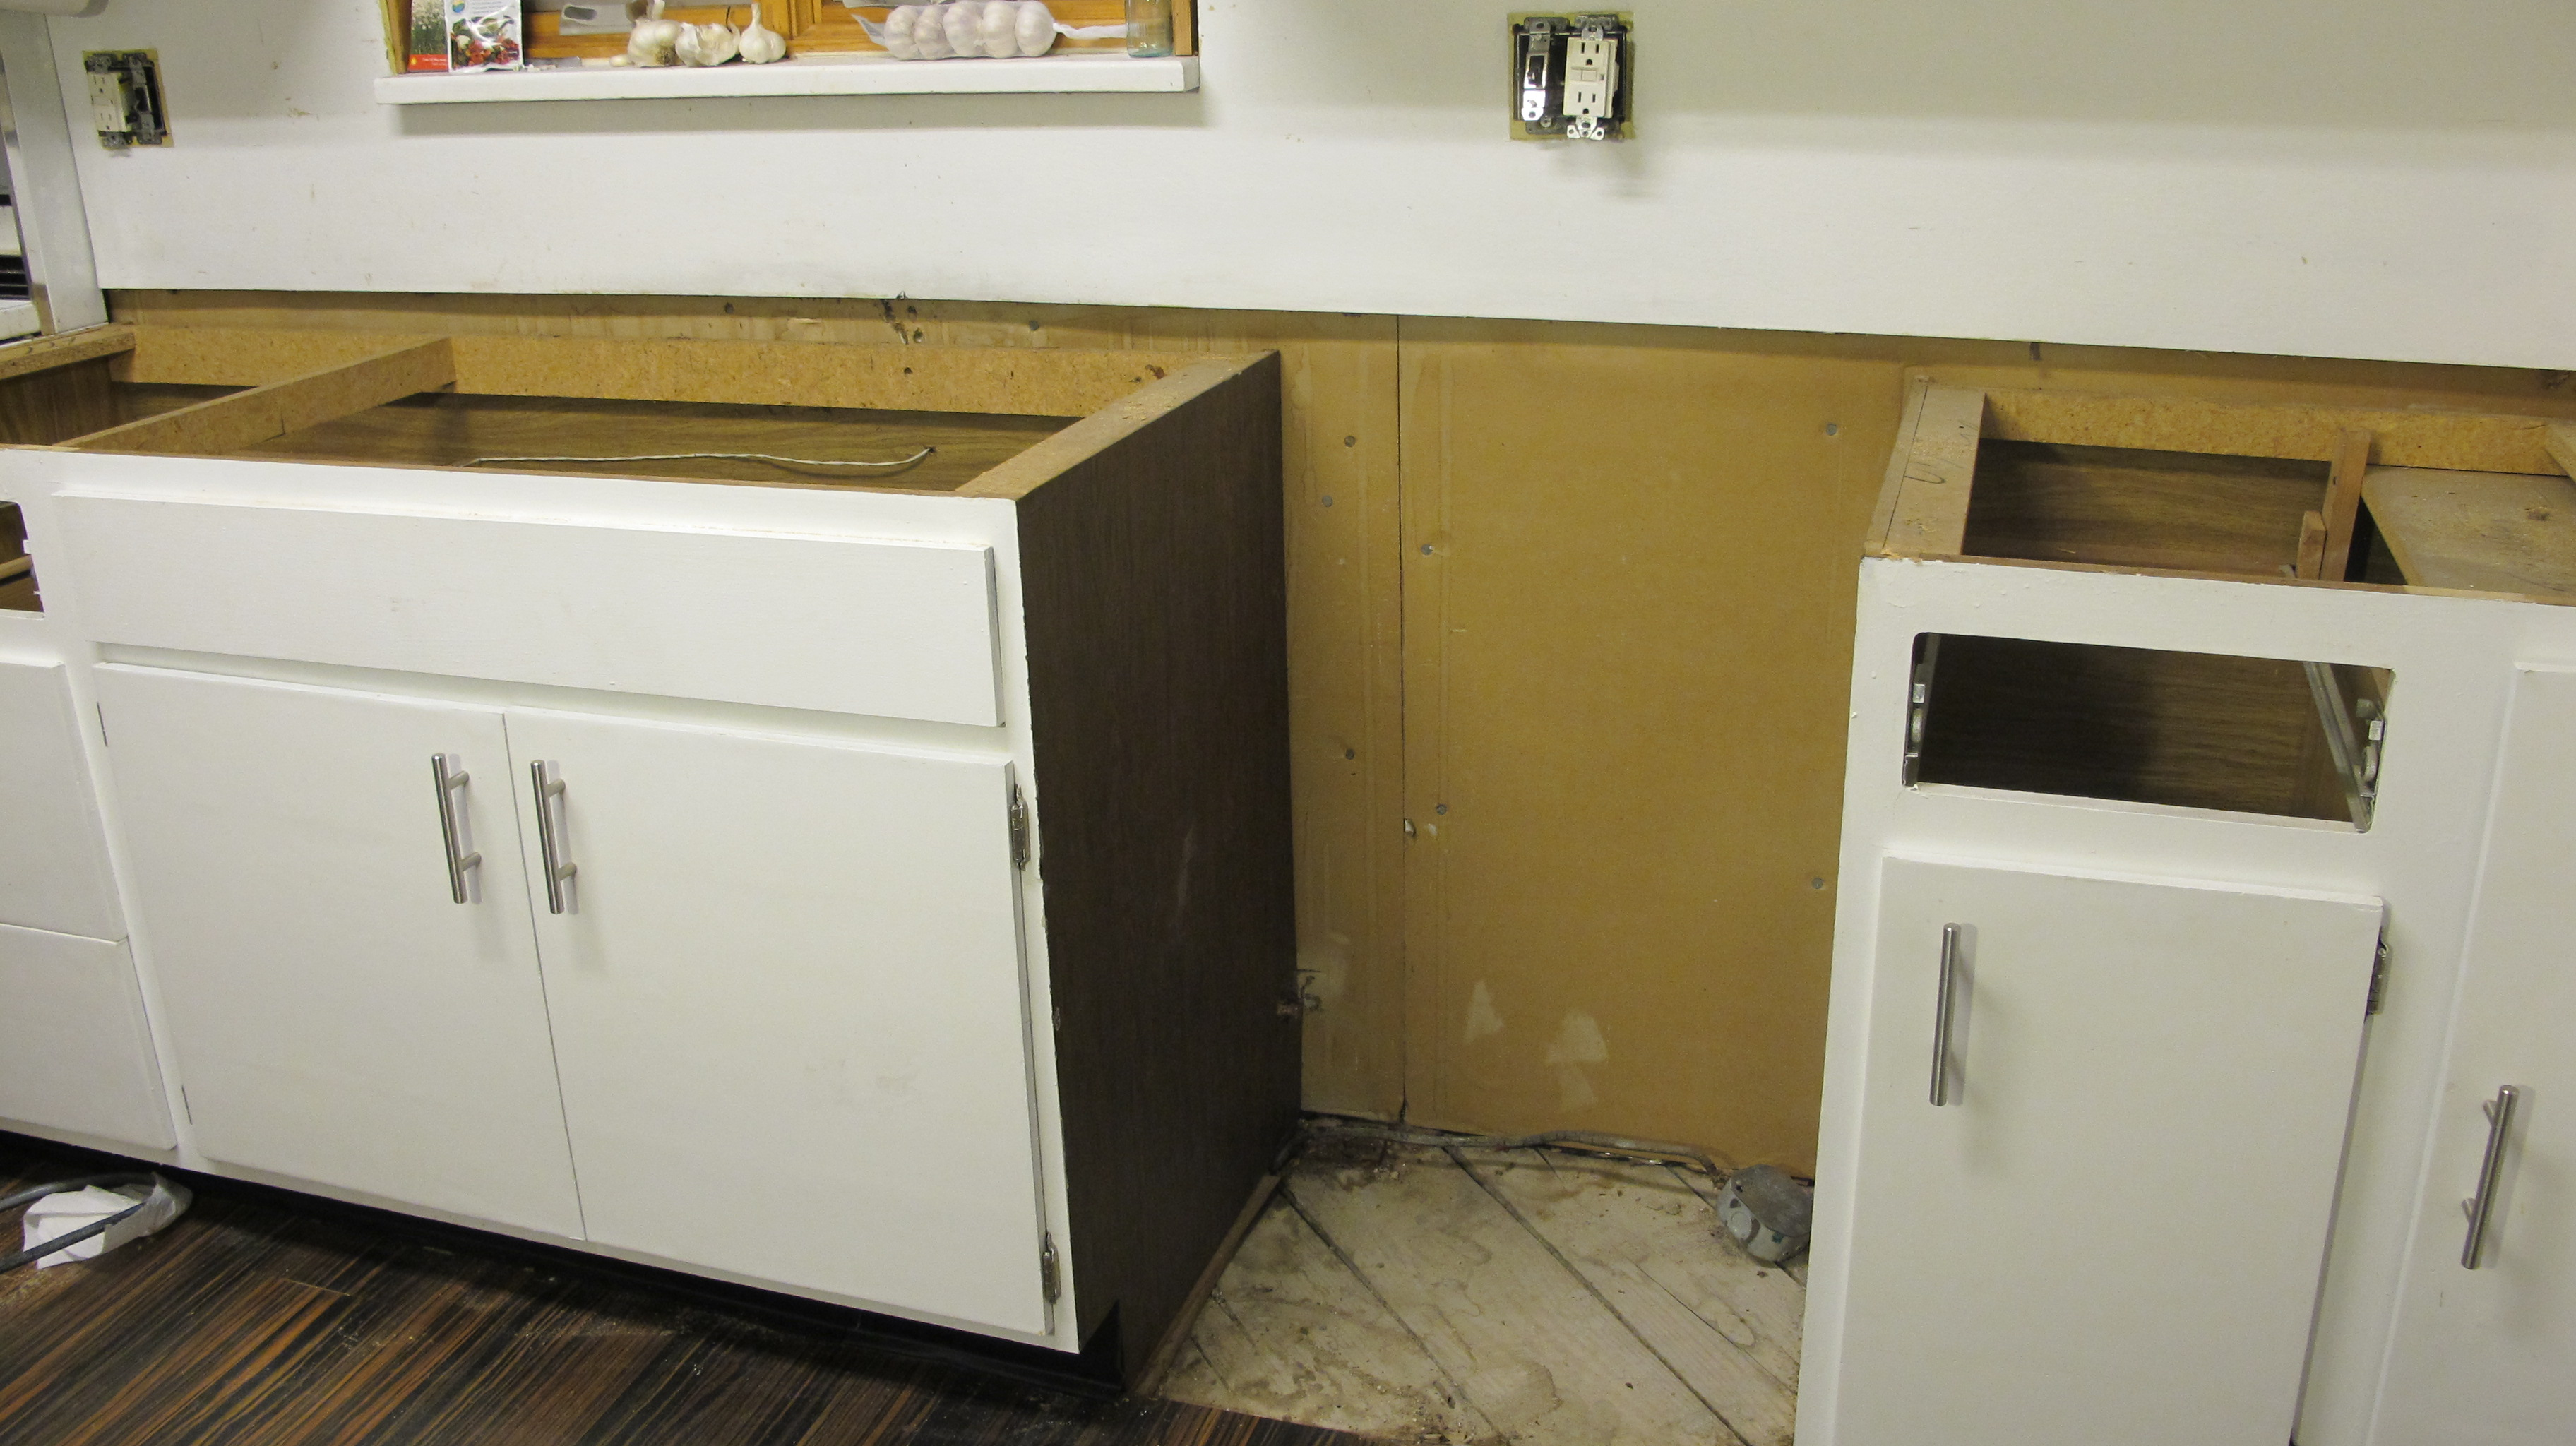 Countertop Dishwasher Permanent Installation : Kitchen Countertops: Ikea 96